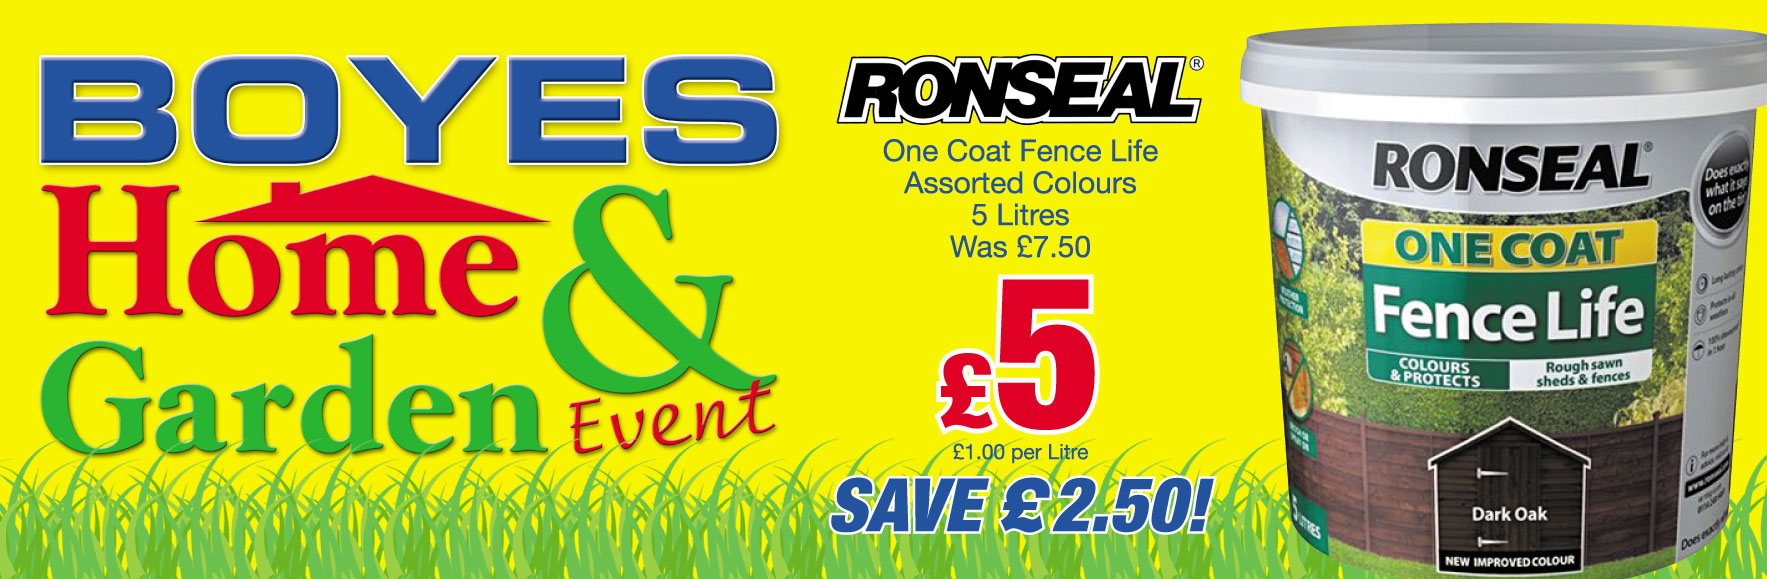 'Ronseal' One Coat Fence Life ONLY £5